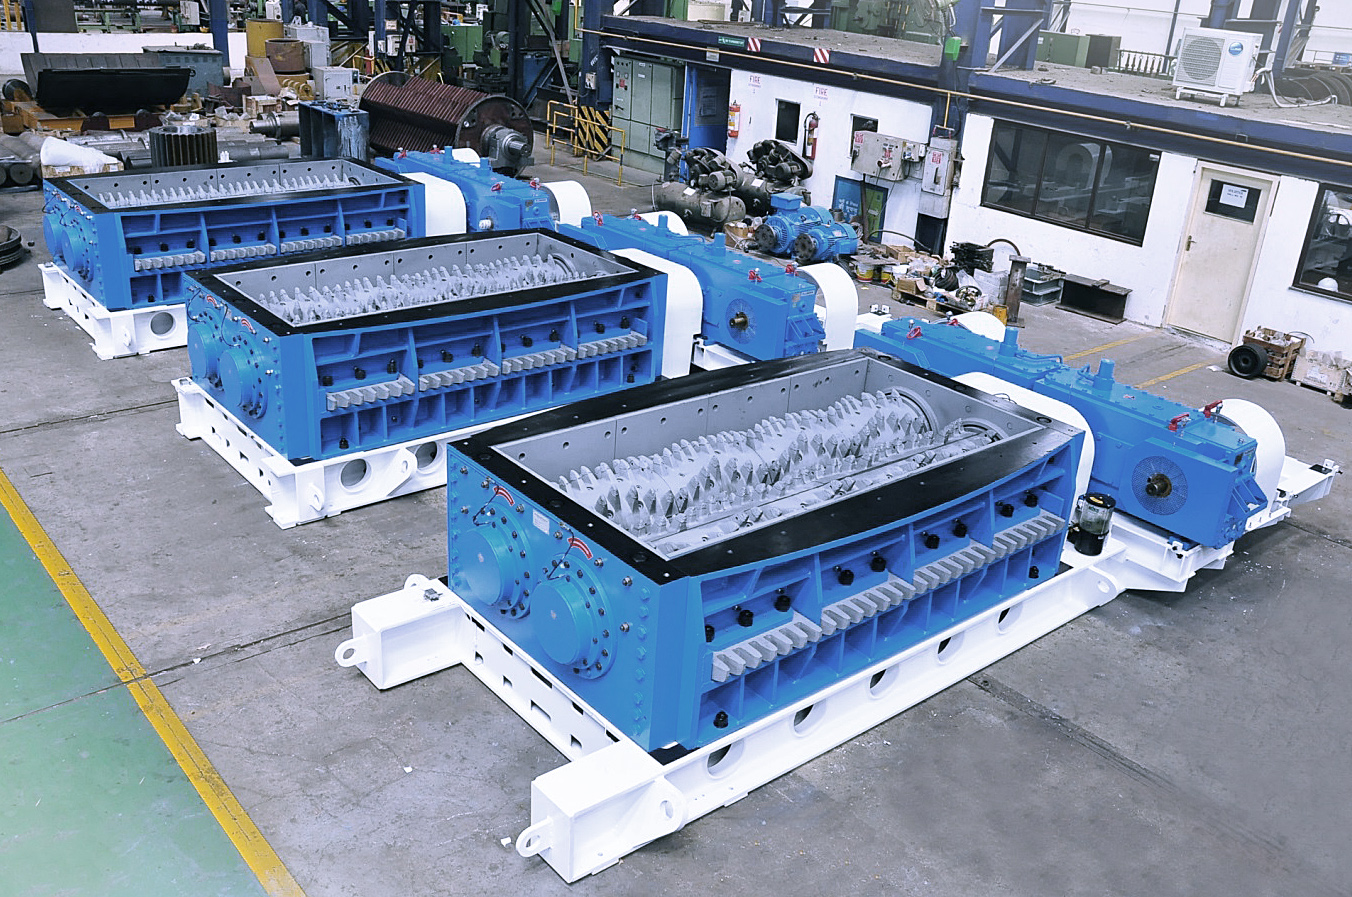 Chinese mining company orders four RollSizers from thyssenkrupp's expanded standard machine range